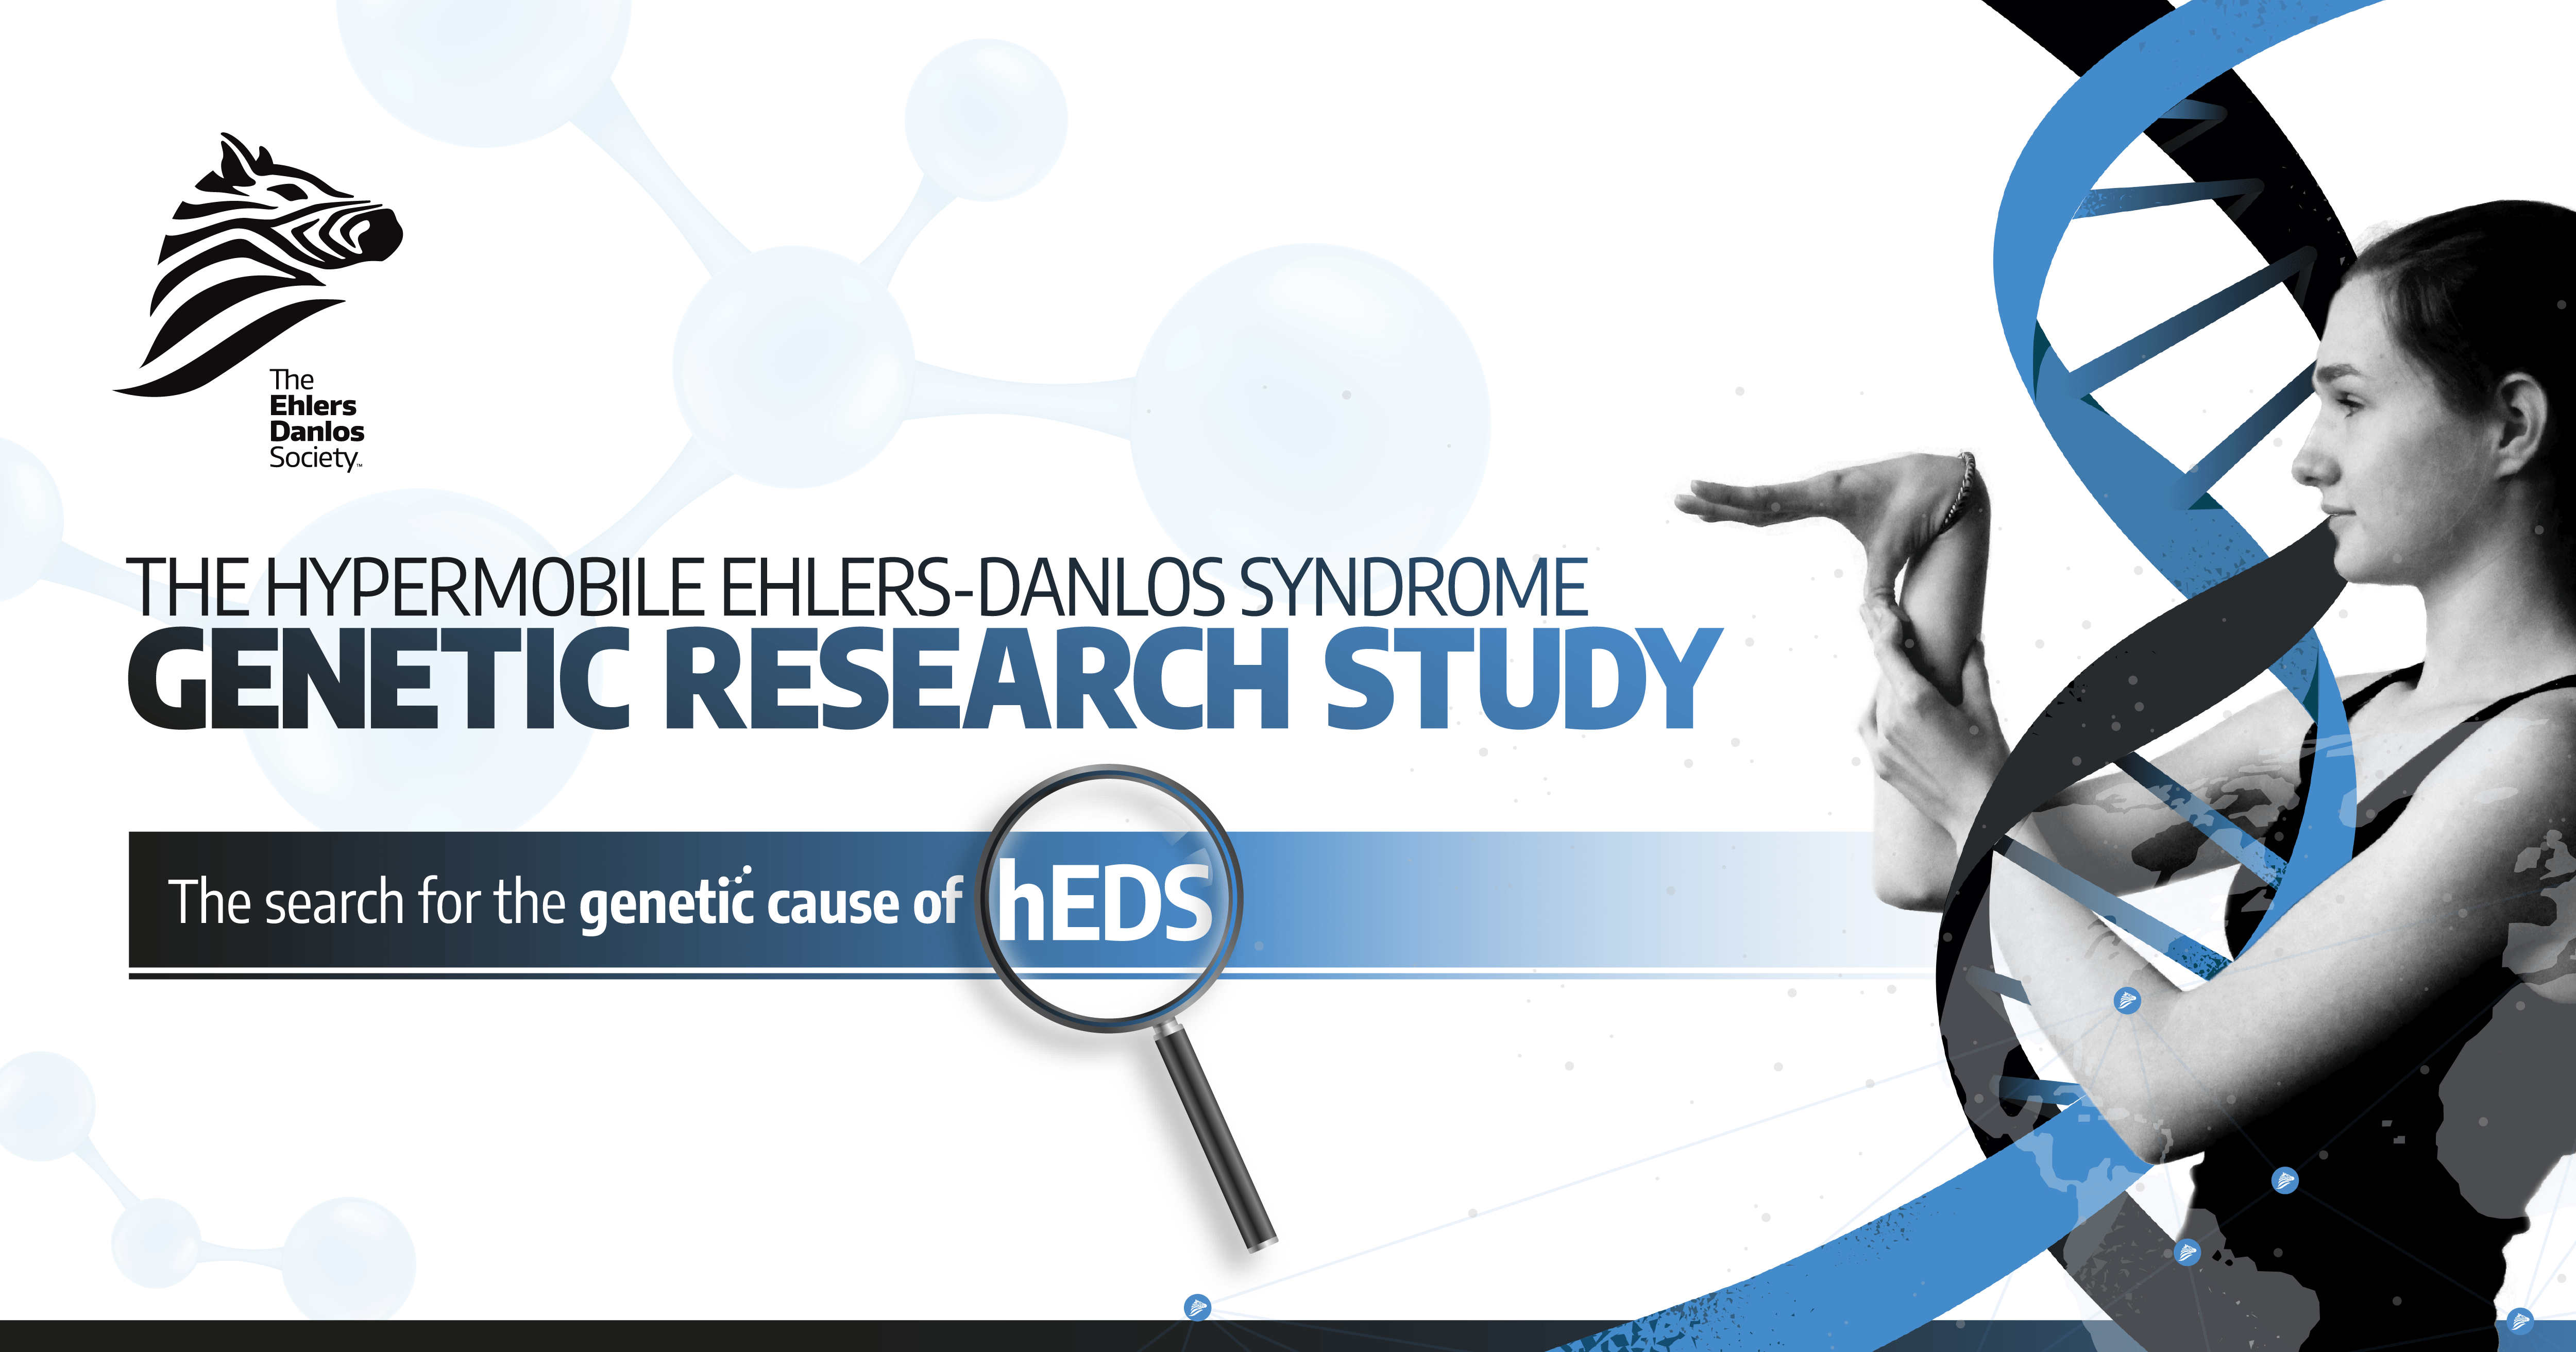 The Ehlers-Danlos Society Announces Worldwide Research Study to Identify the Genetic Cause of Hypermobile Ehlers-Danlos Syndrome